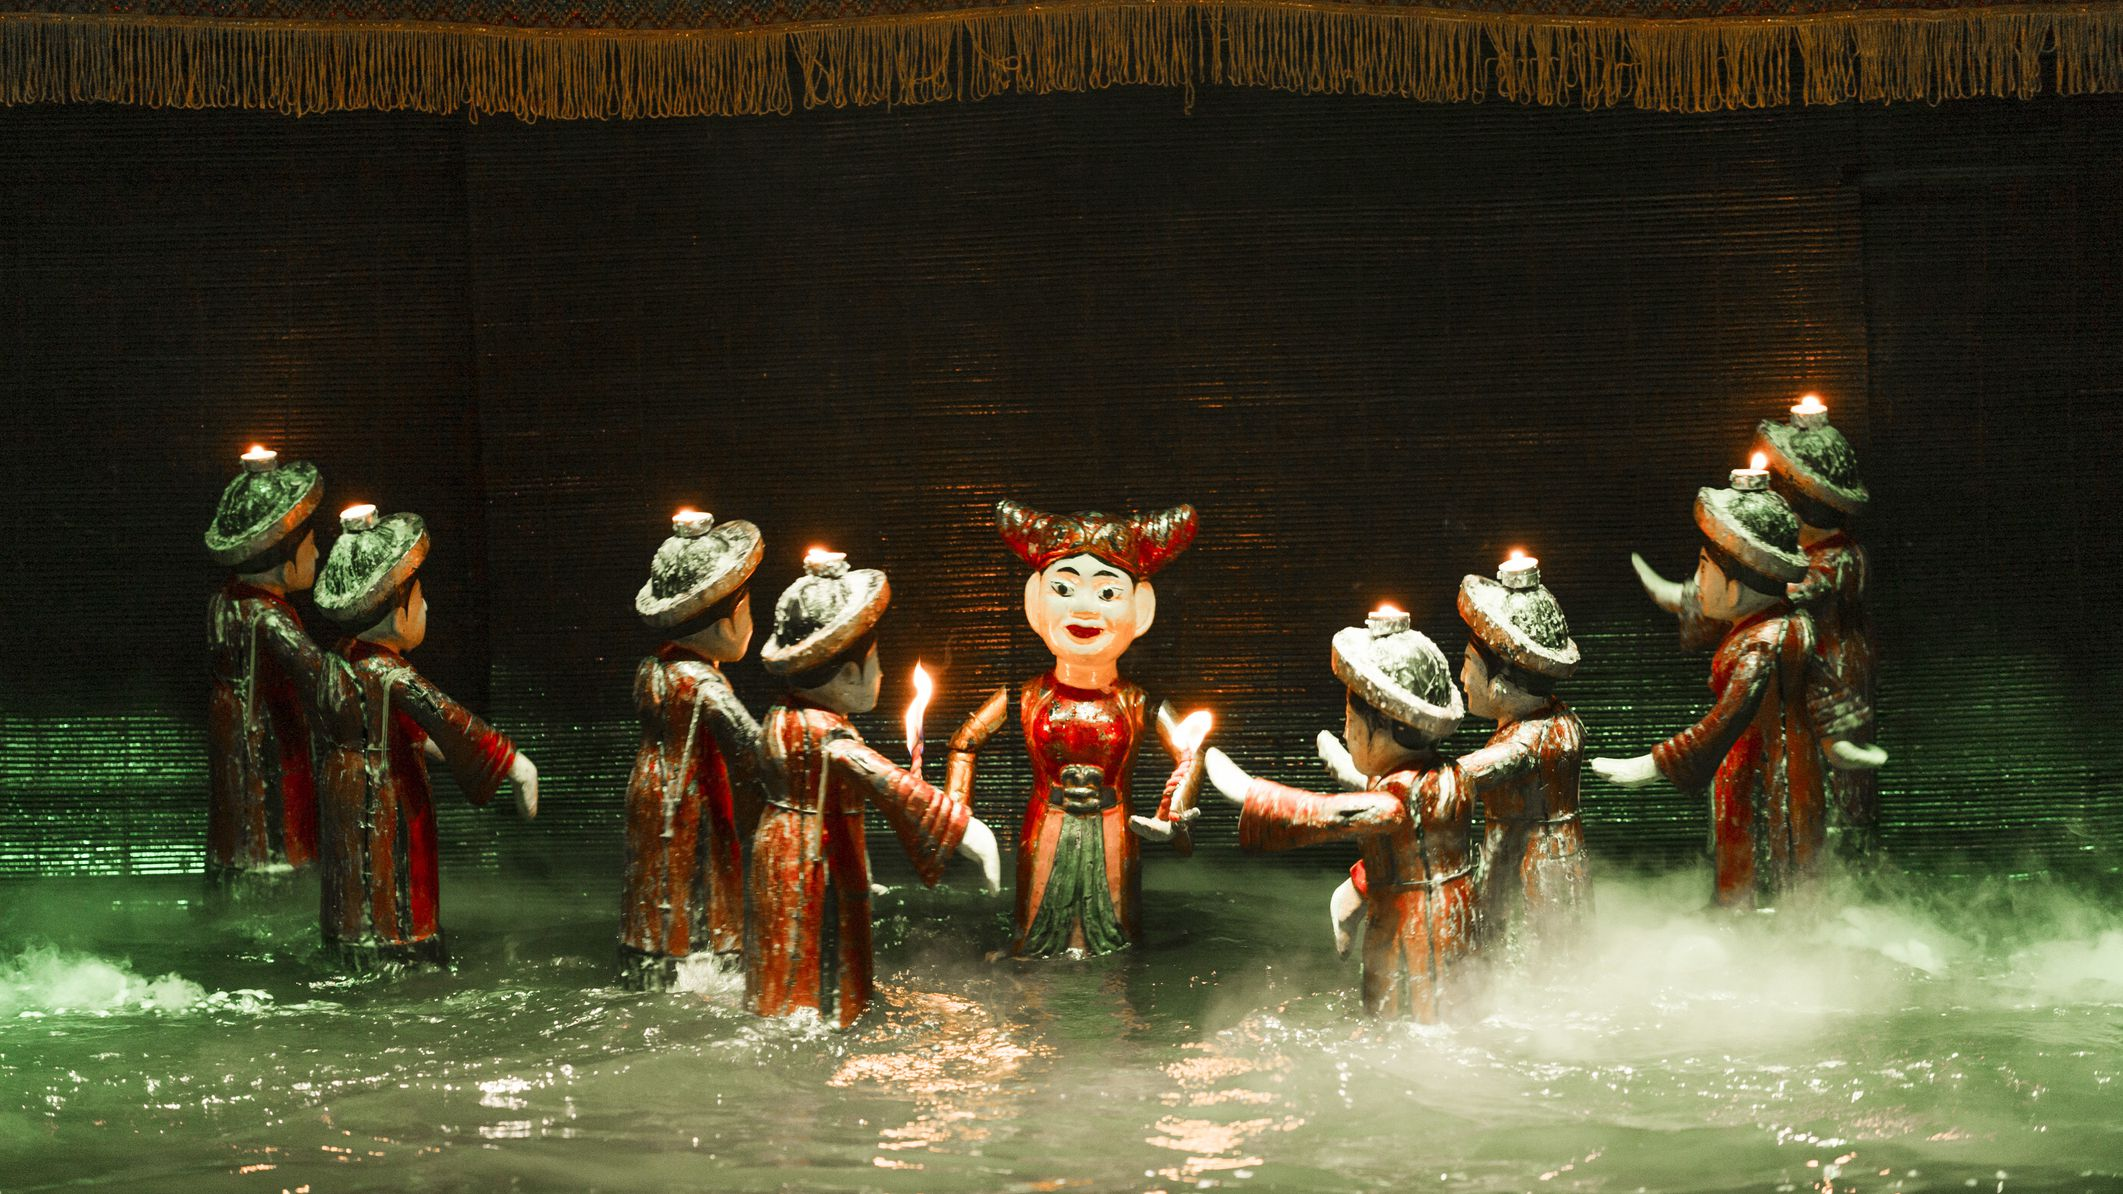 Vietnamese Theater: The Water Puppet Show in Hanoi - Water Puppet Show History